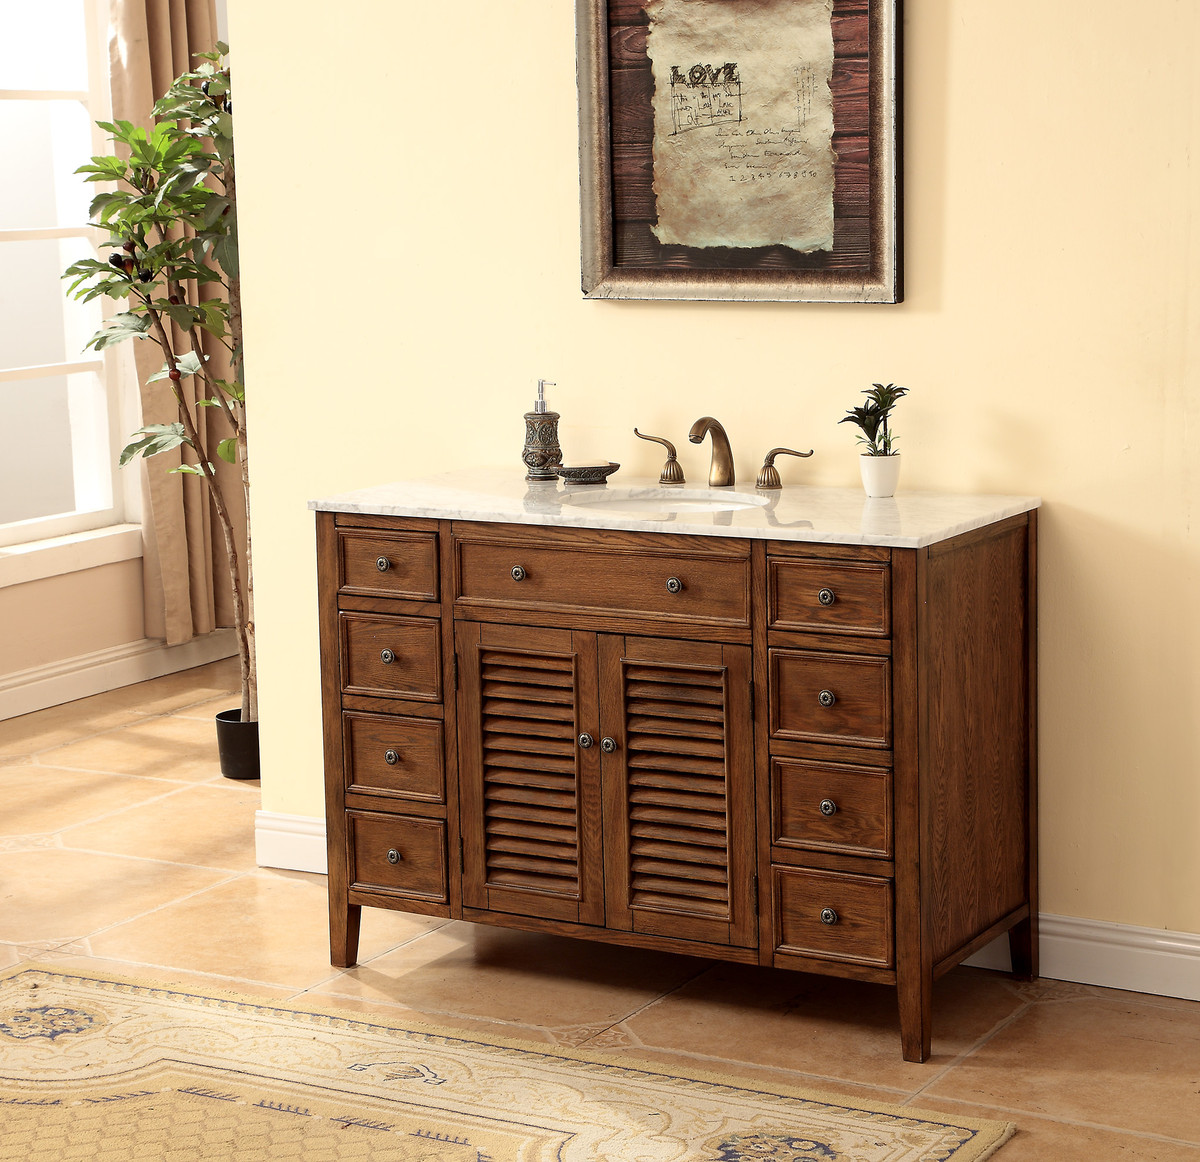 "48"" Adelina Cottage Style Single Sink Bathroom Vanity in Walnut Finish with White Italian Carrara Marble Countertop"